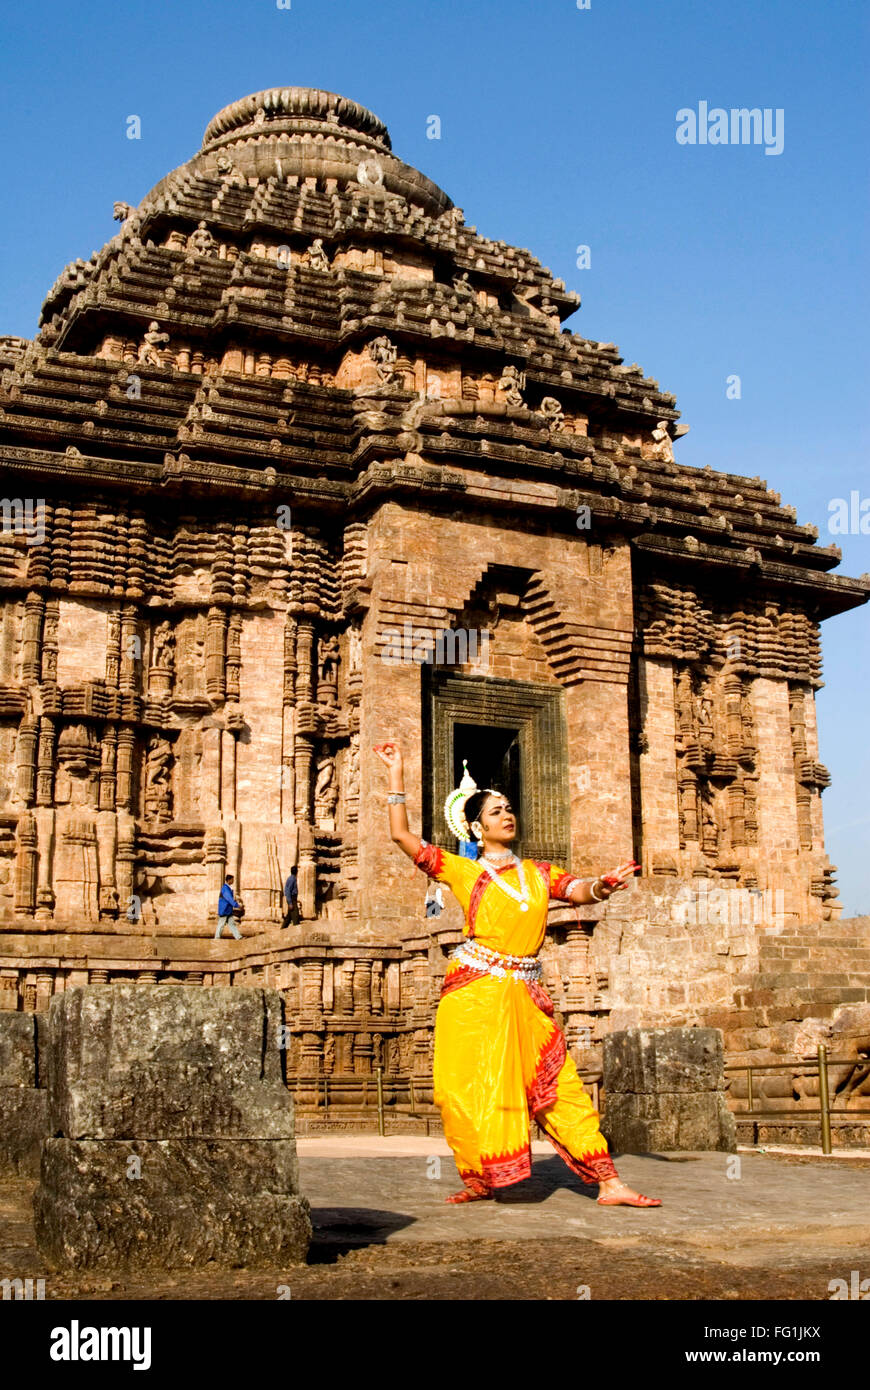 Odissi dancer strikes pose of re enacts Indian myths such as Ramayana against backdrop Sun temple complex Konarak - Stock Image